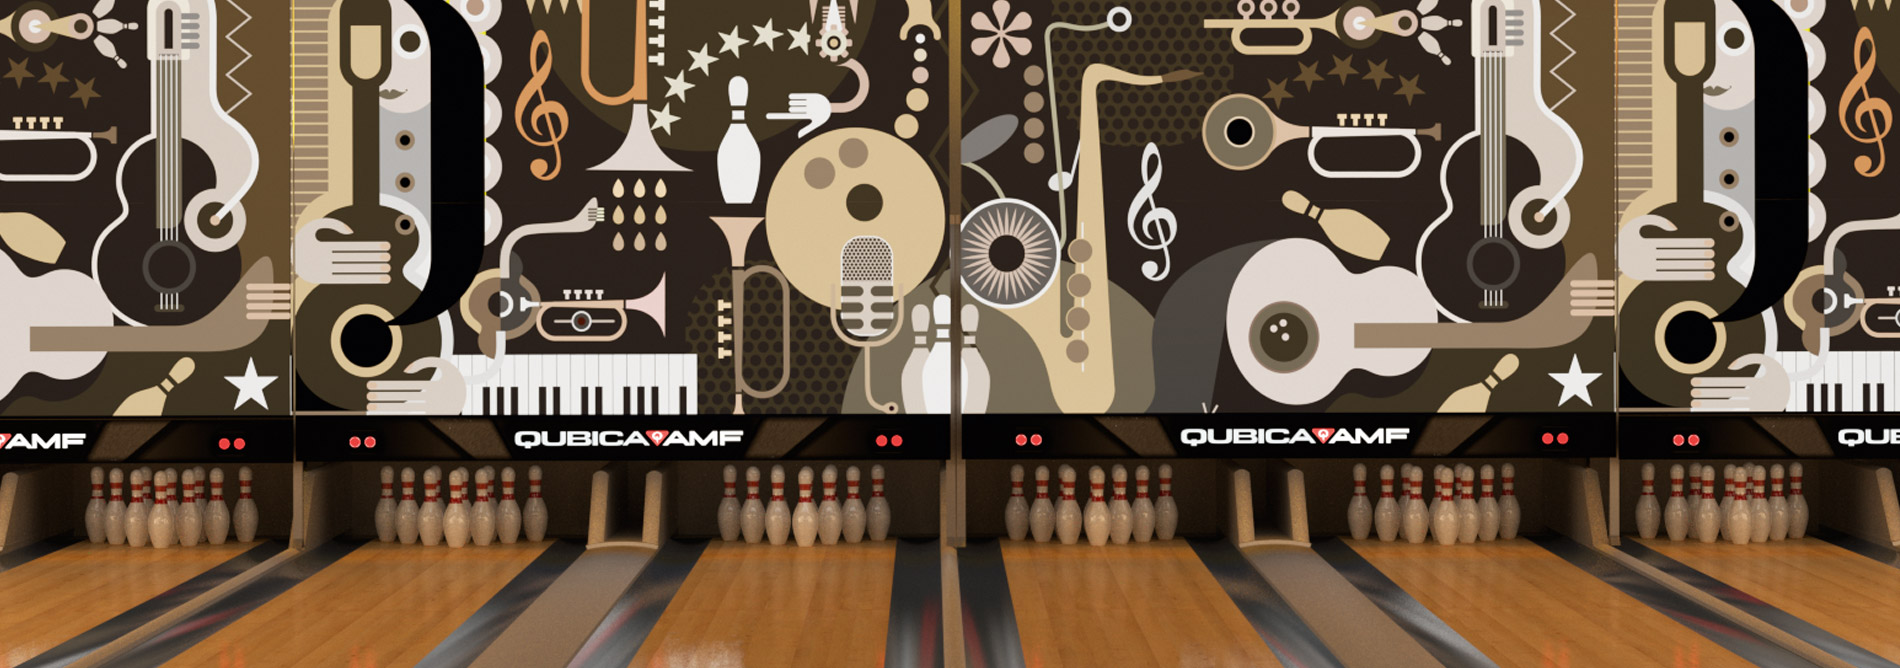 Bowling-QubicaAMF-harmony-masking-collection-banner.jpg